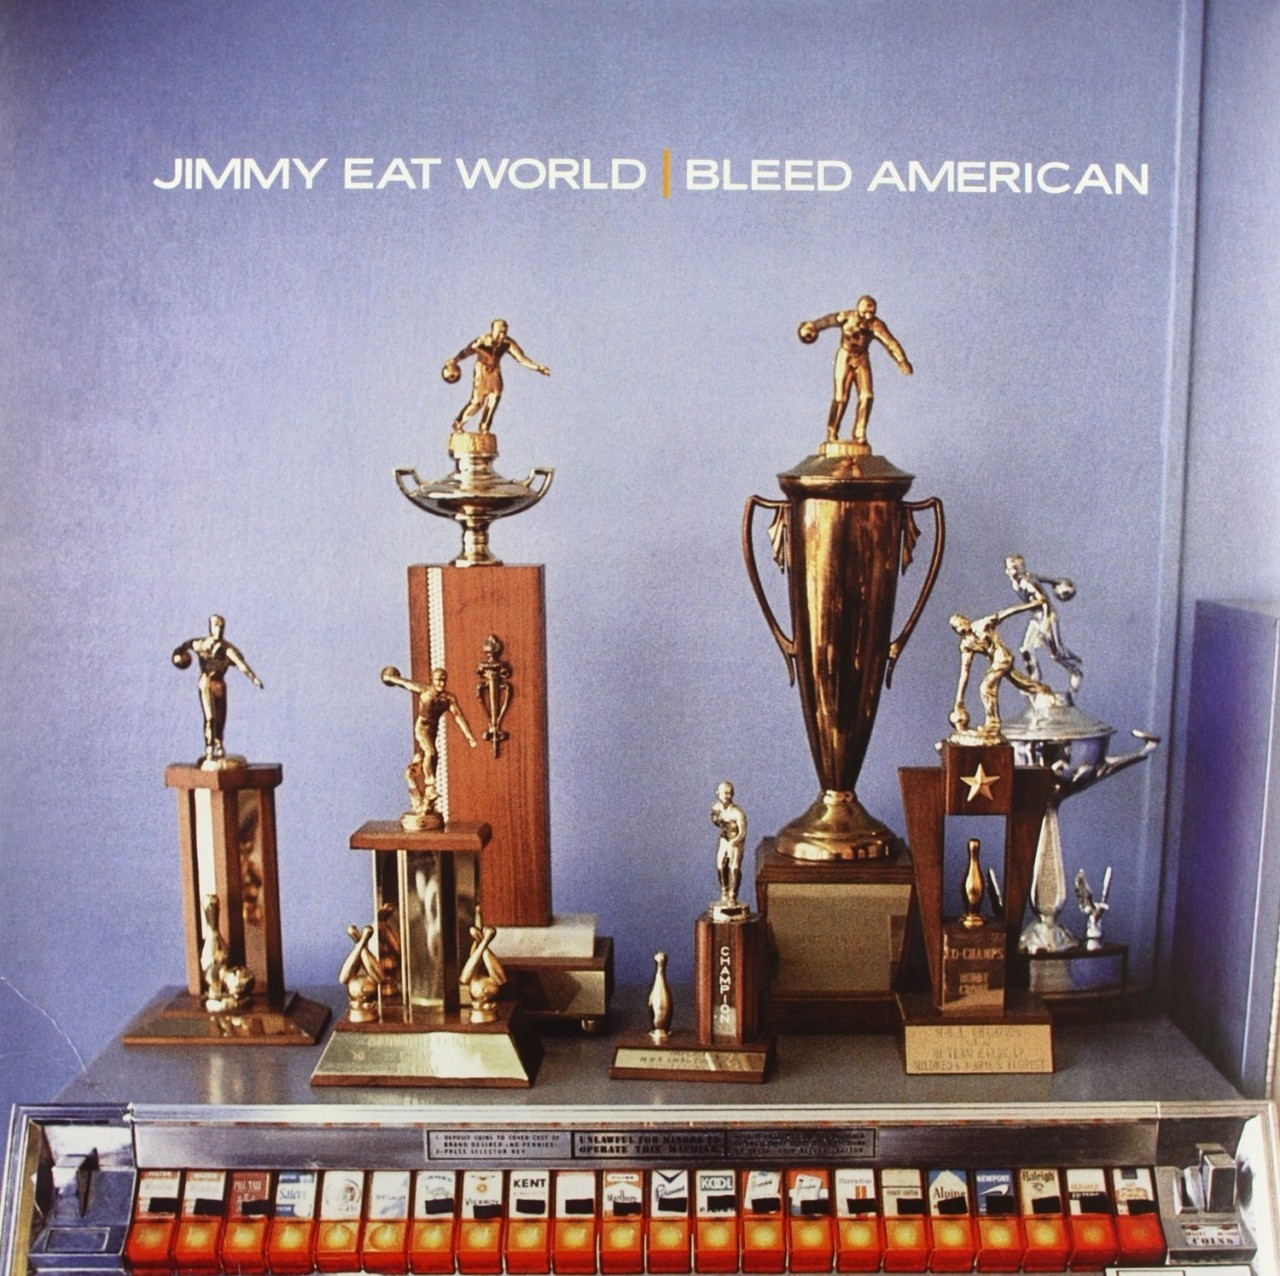 Jimmy Eat World - Bleed American LP